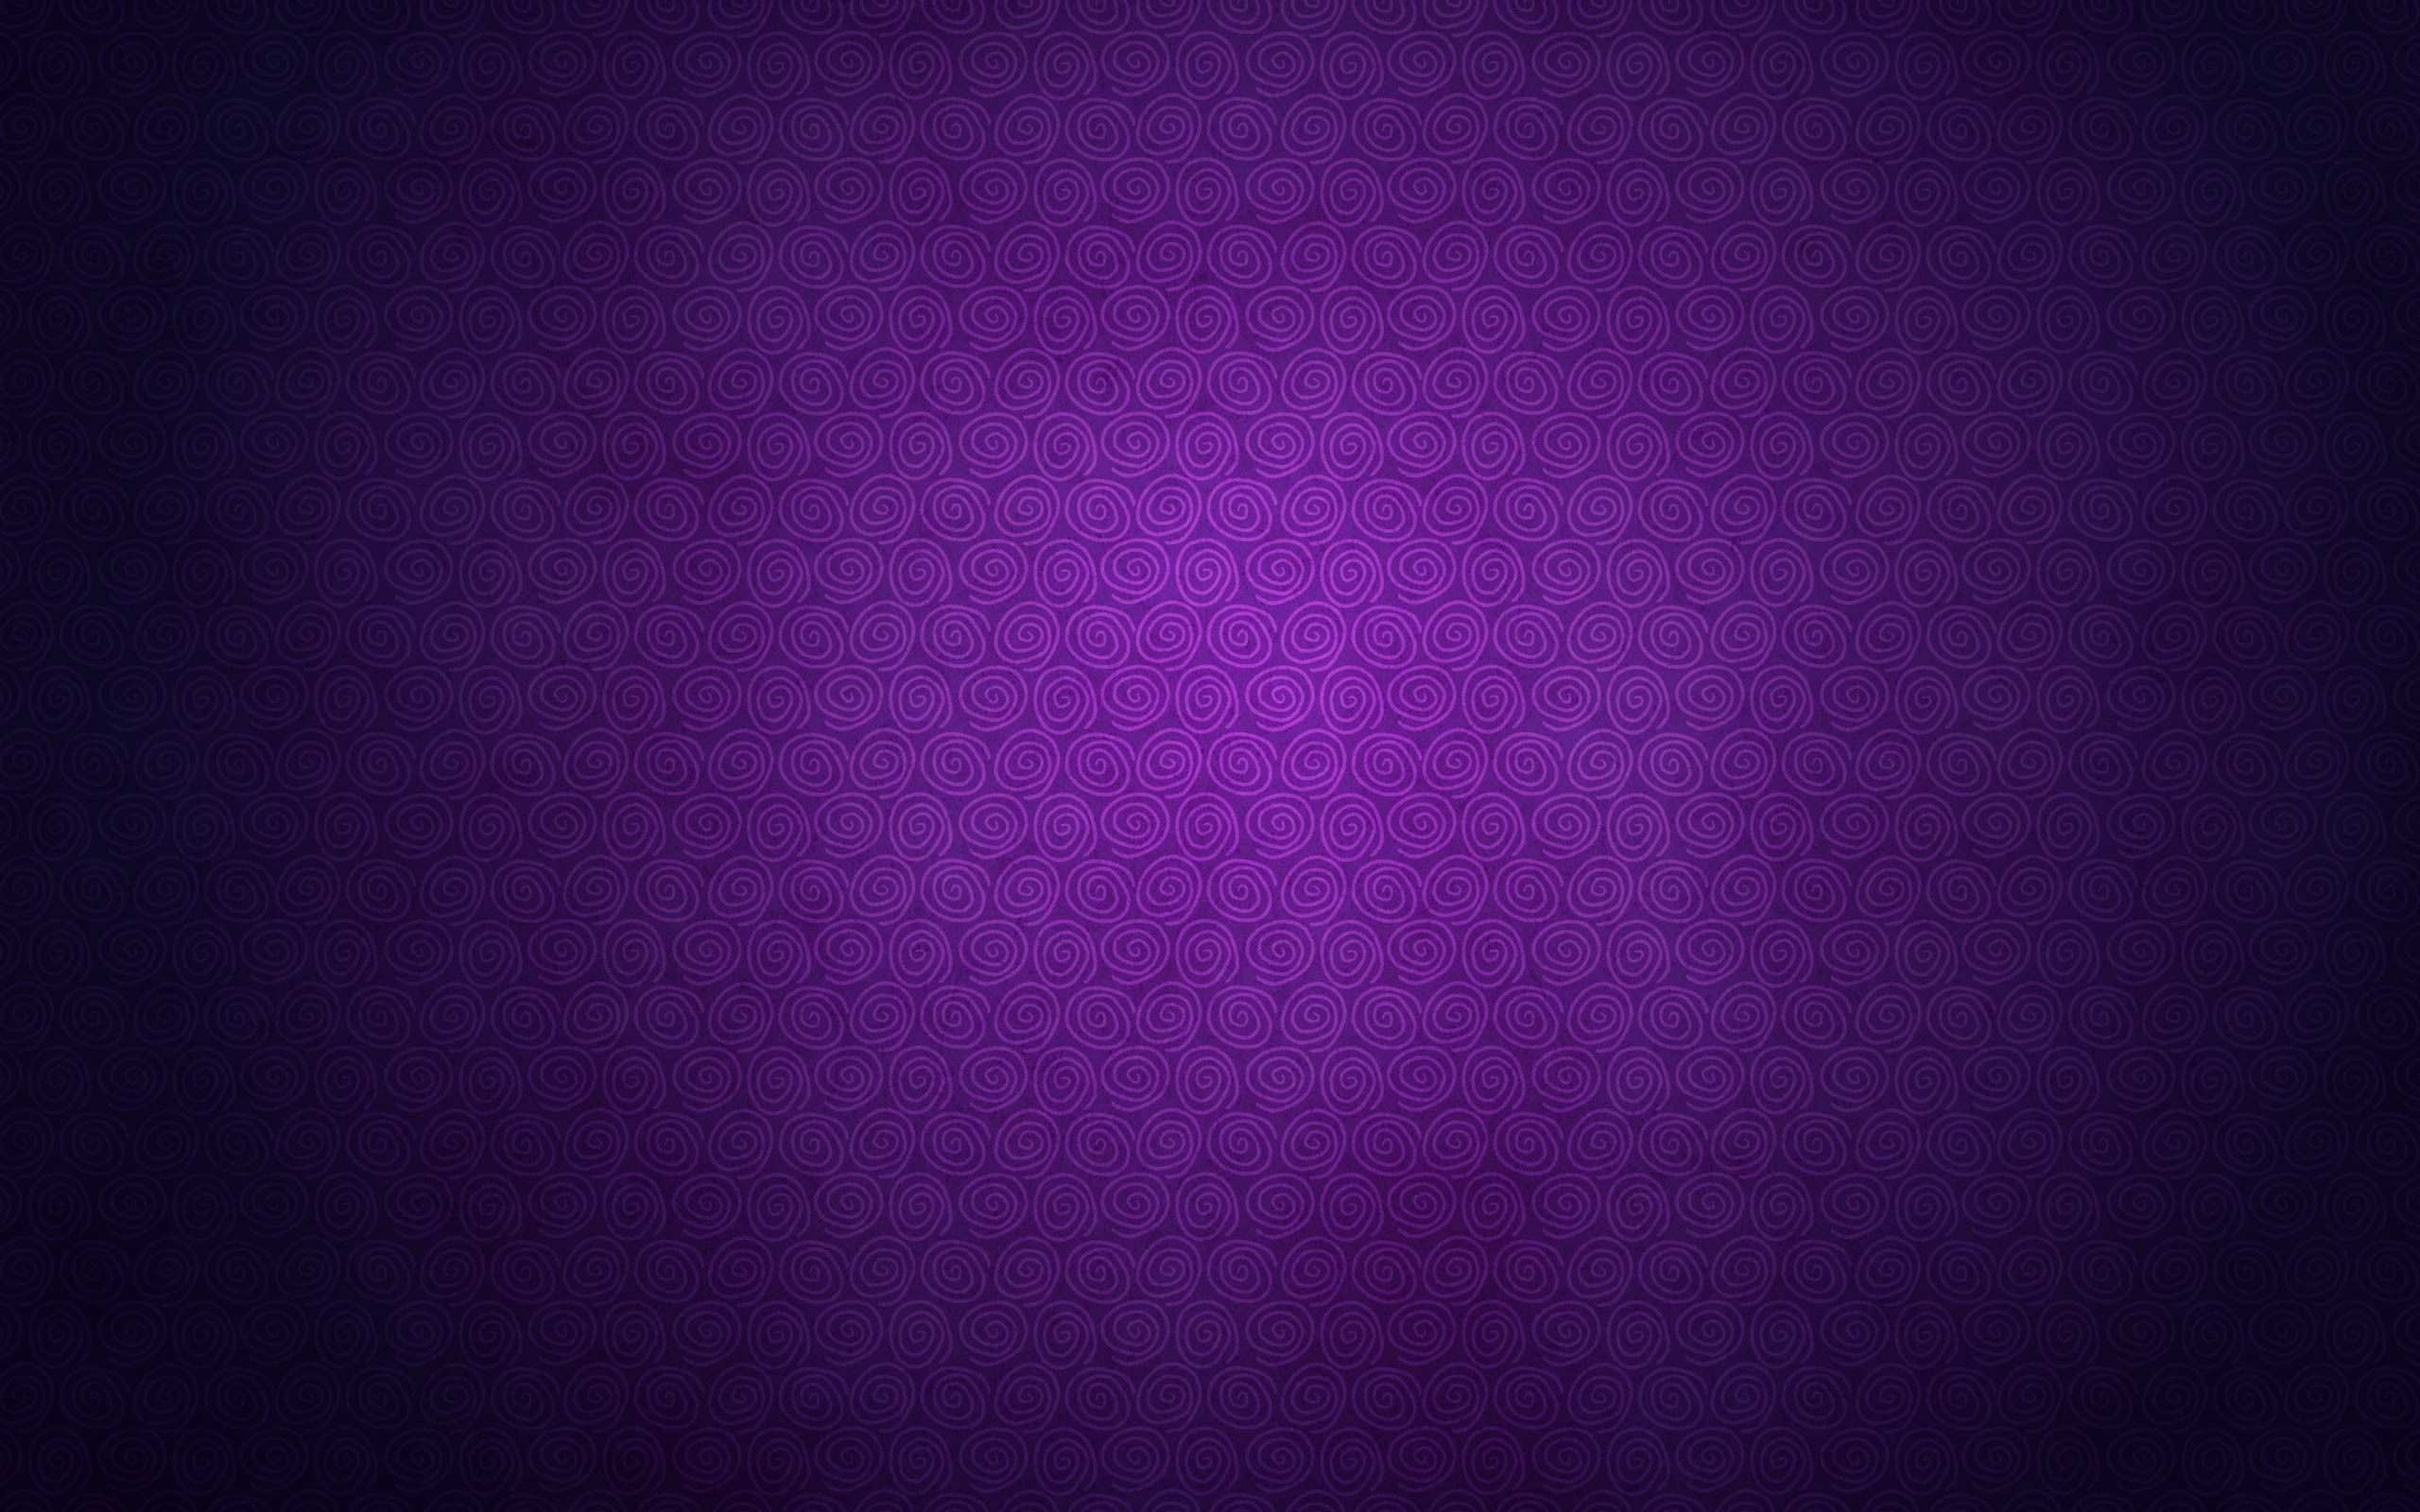 free download purple - photo #19